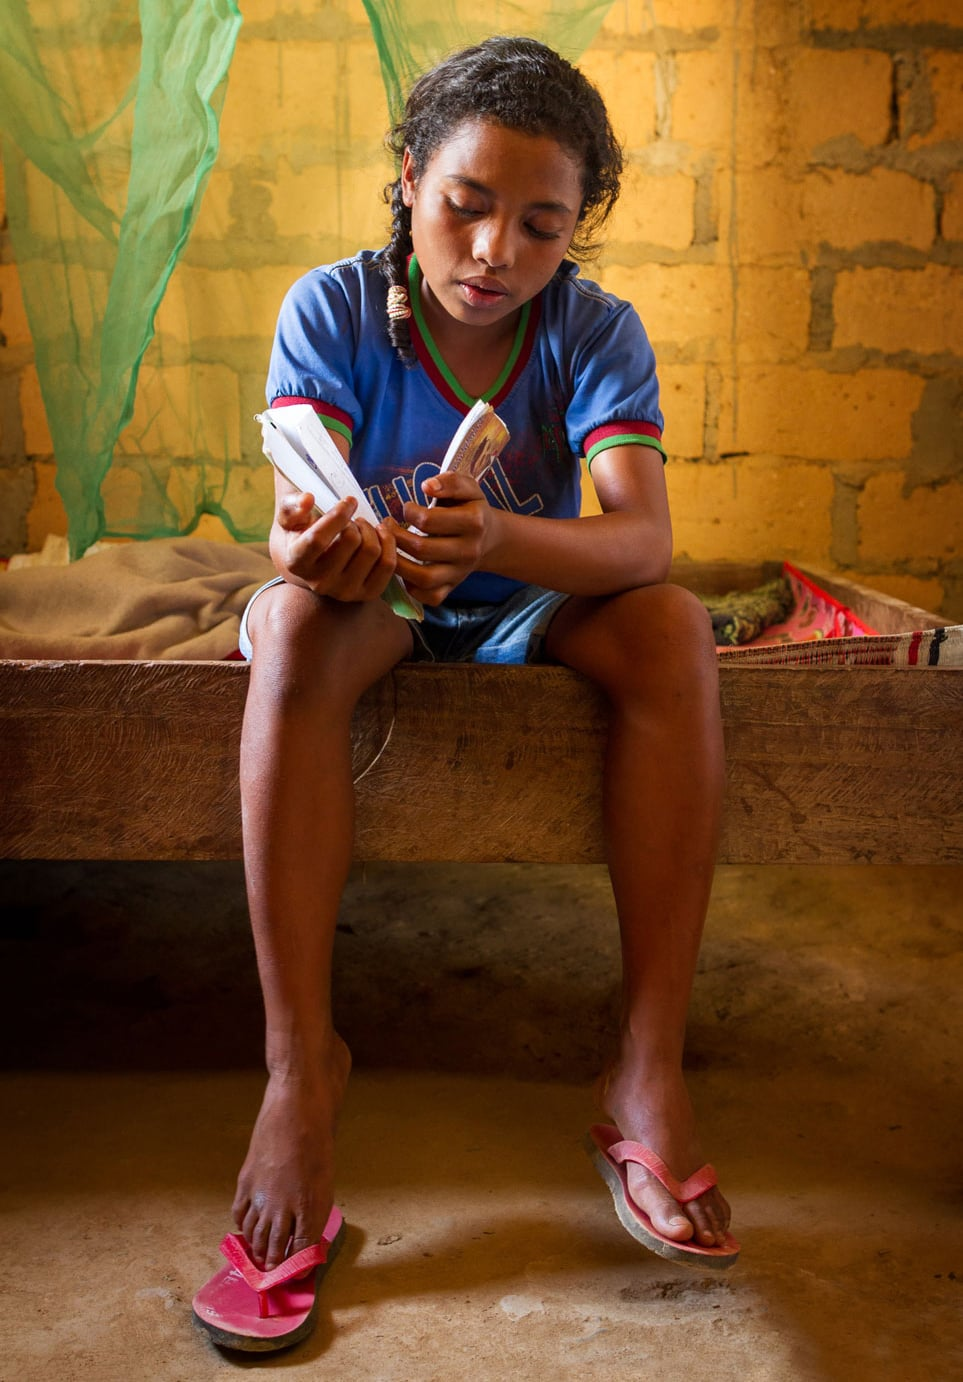 "Aida Mesquita, 14, does her homework. A  ida is in the fifth grade. She is keen to learn, but this was not always the case. Like 30 per cent of children in Timor Leste, Aida had to repeat her first year of school. ""There was no pre-school then so I started school when I was five,"" she says. Aida didn't understand what she was learning and the harsh disciplinary practices of the teachers scared her. After her first year, she dropped out. When her parents convinced her to return two years later, it was to a totally new kind of classroom. The teachers had been trained by UNICEF in child friendly teaching methods that place a premium on child participation. For the first time, Aida liked going to school and learning."